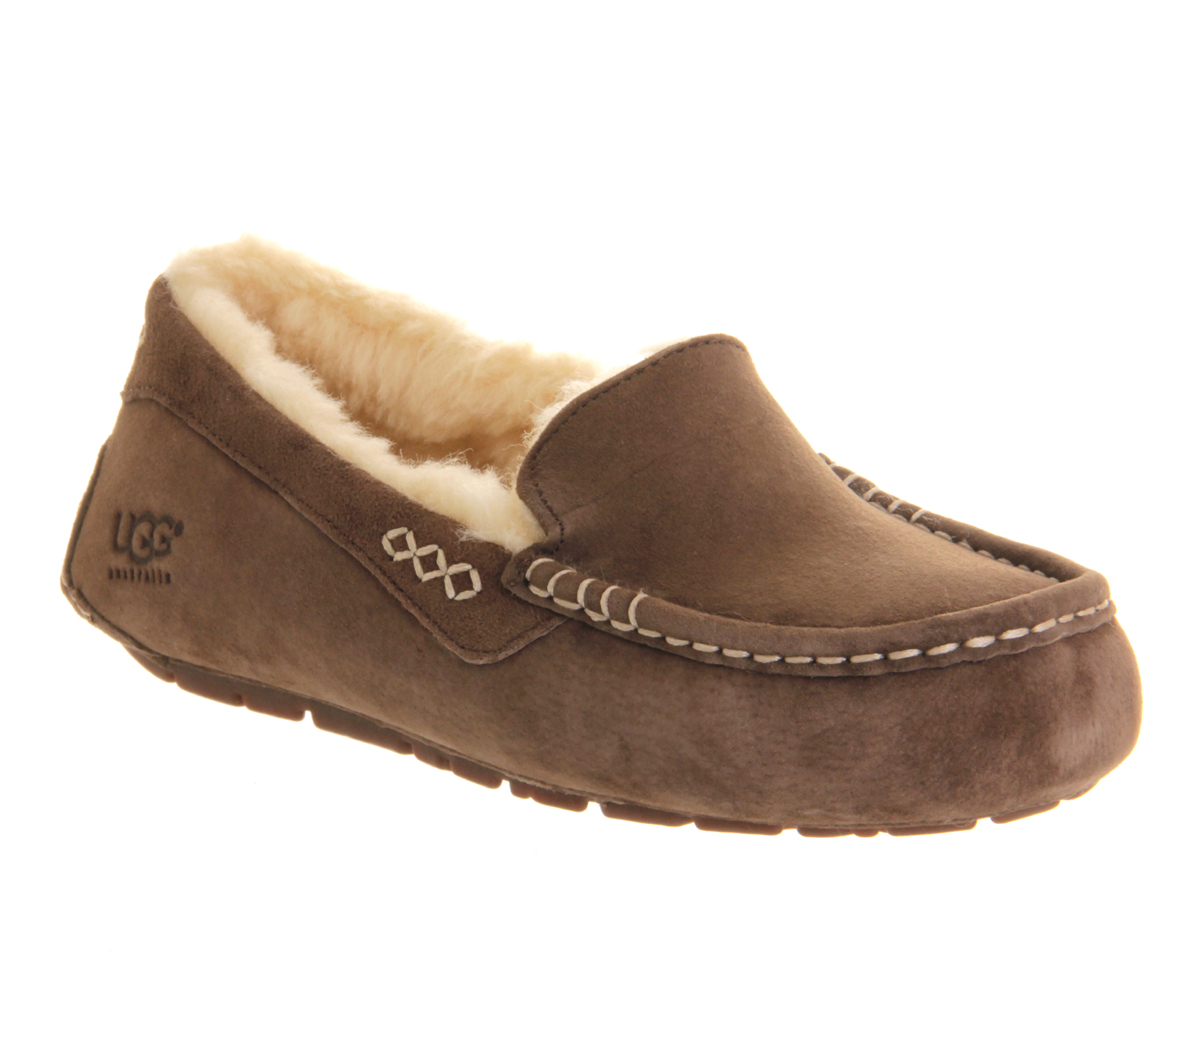 ansley men Ansley by ugg at zapposcom read ugg ansley product reviews, or select the size, width, and color of your choice.